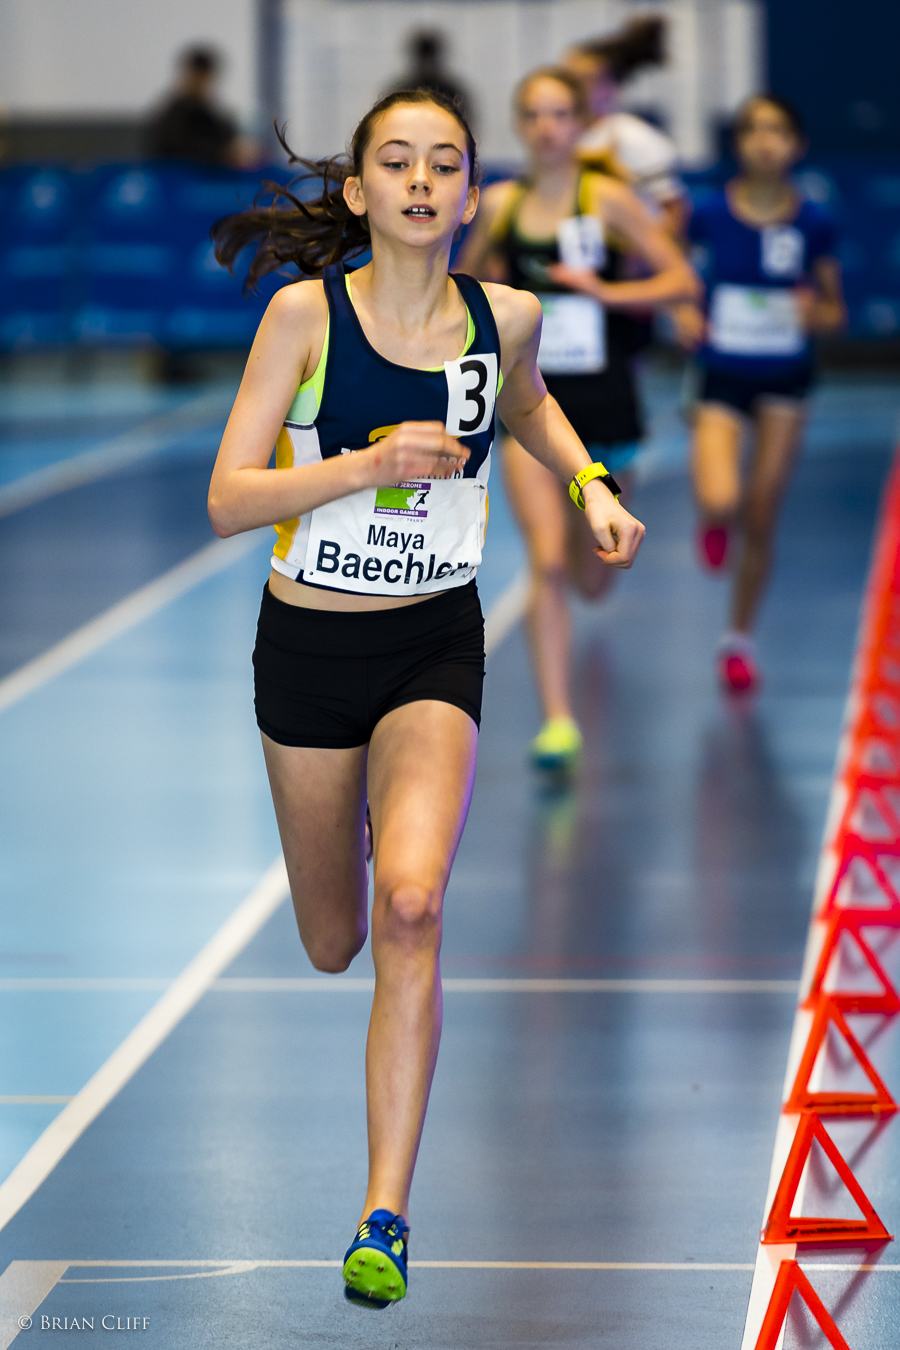 Maya Baechler en route to victory in the 1200m. Photo by Brian Cliff